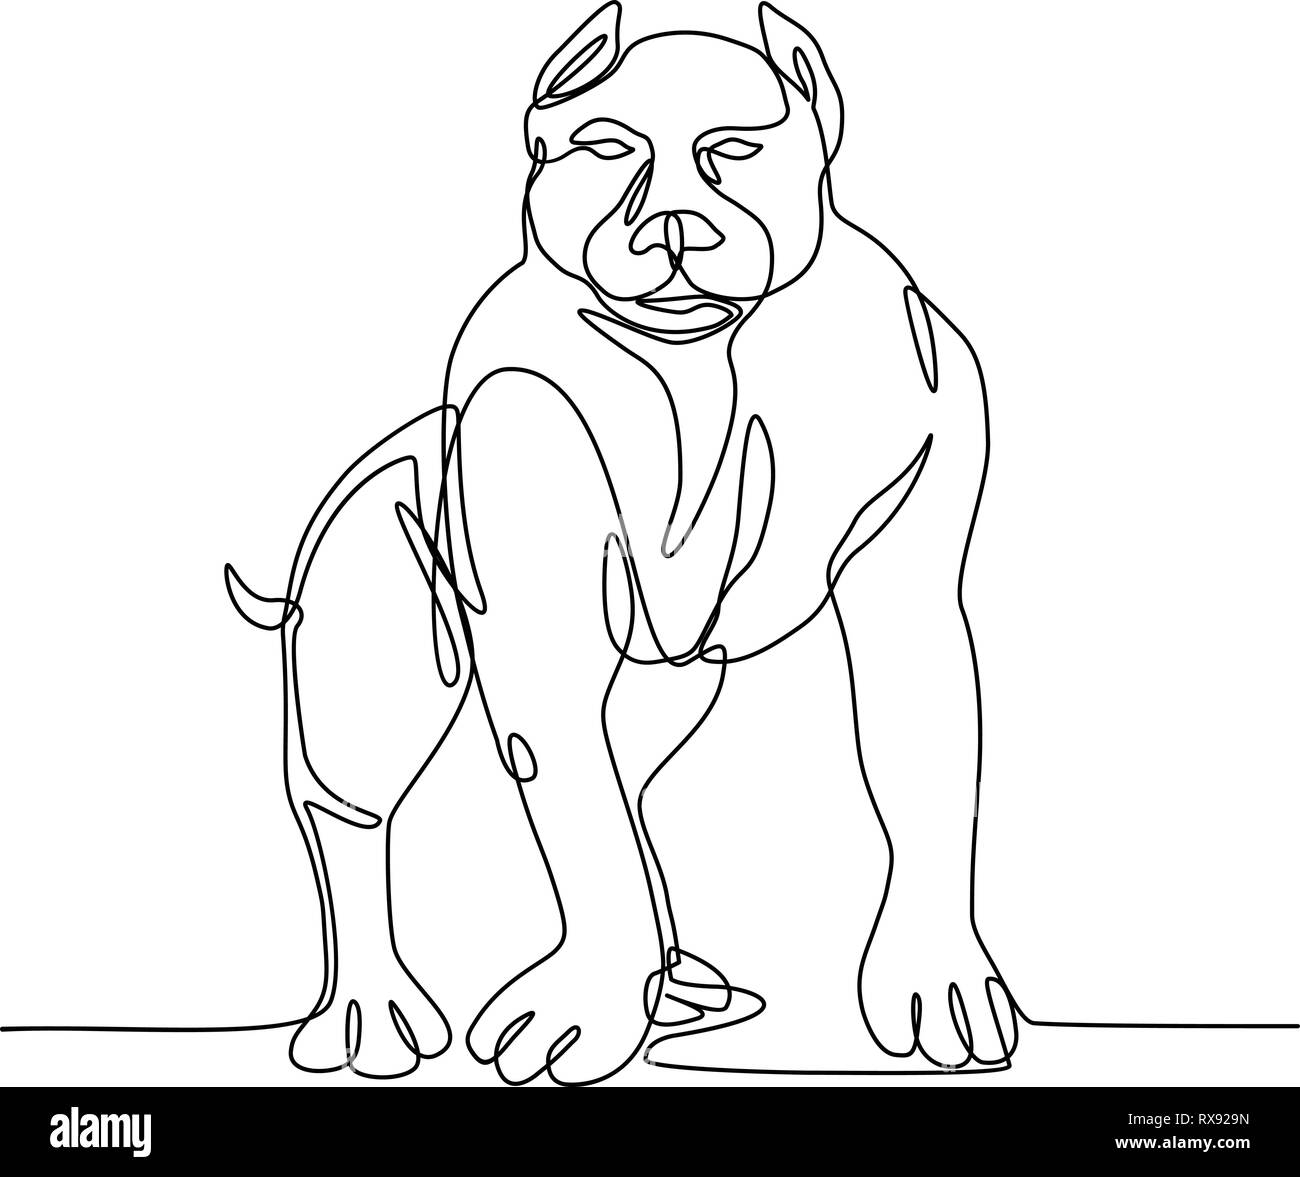 Continuous line illustration of an  American Bully, pit bull, a type of dog descended from bulldogs and terriers  done in black and white monoline sty - Stock Image